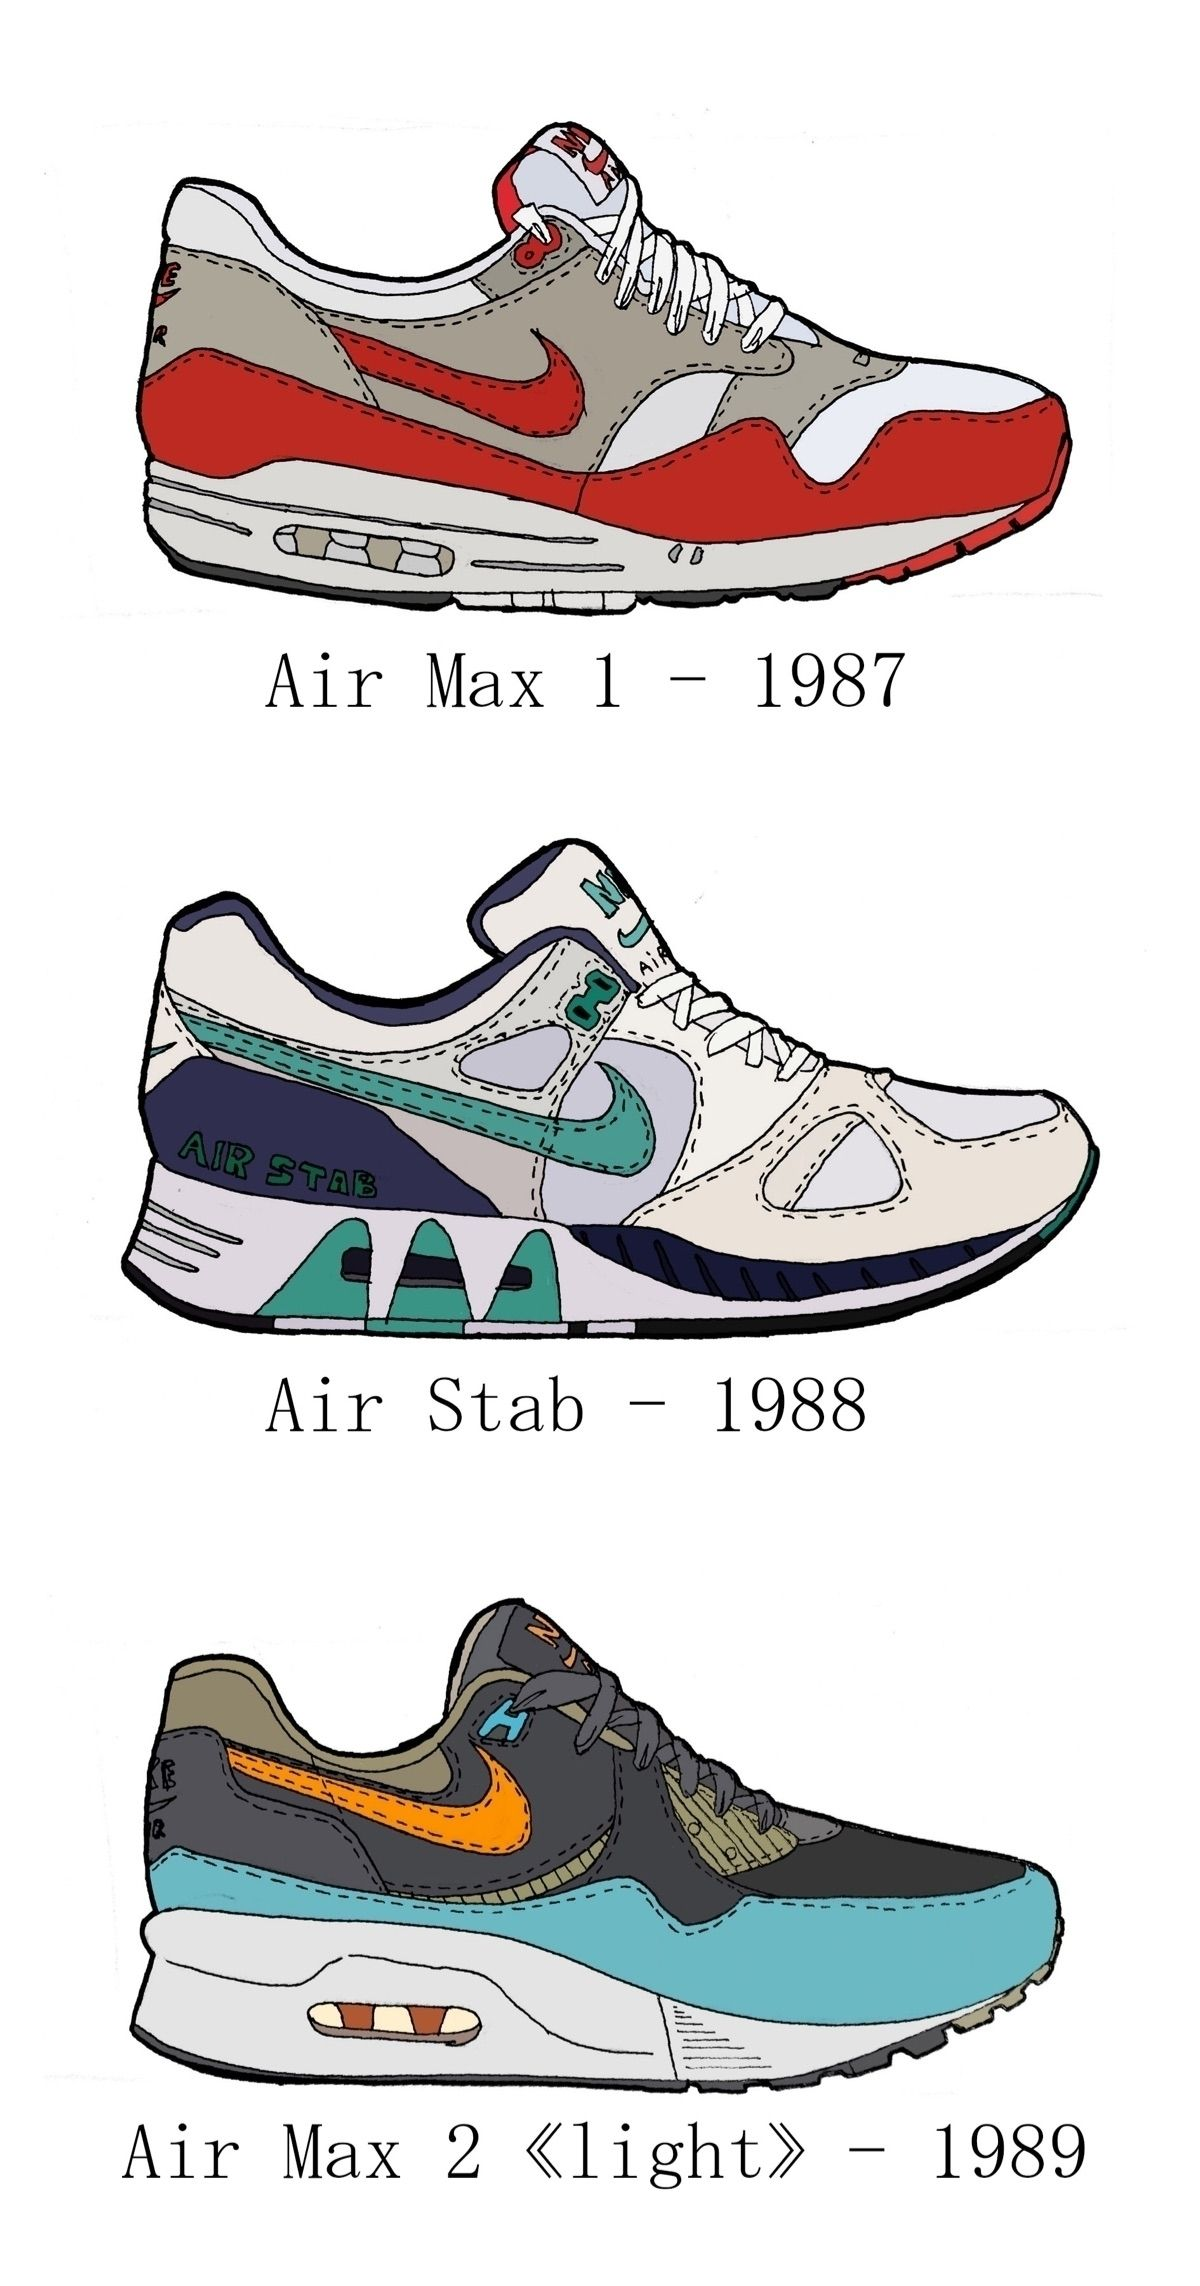 ea5b728641c8d Air Max - 87 to 89  drawing  airmax  87to89  airmax1  airmax2light  airstab   colors  graphicdesign  Nike  shoes  3airmax  victordet  follow